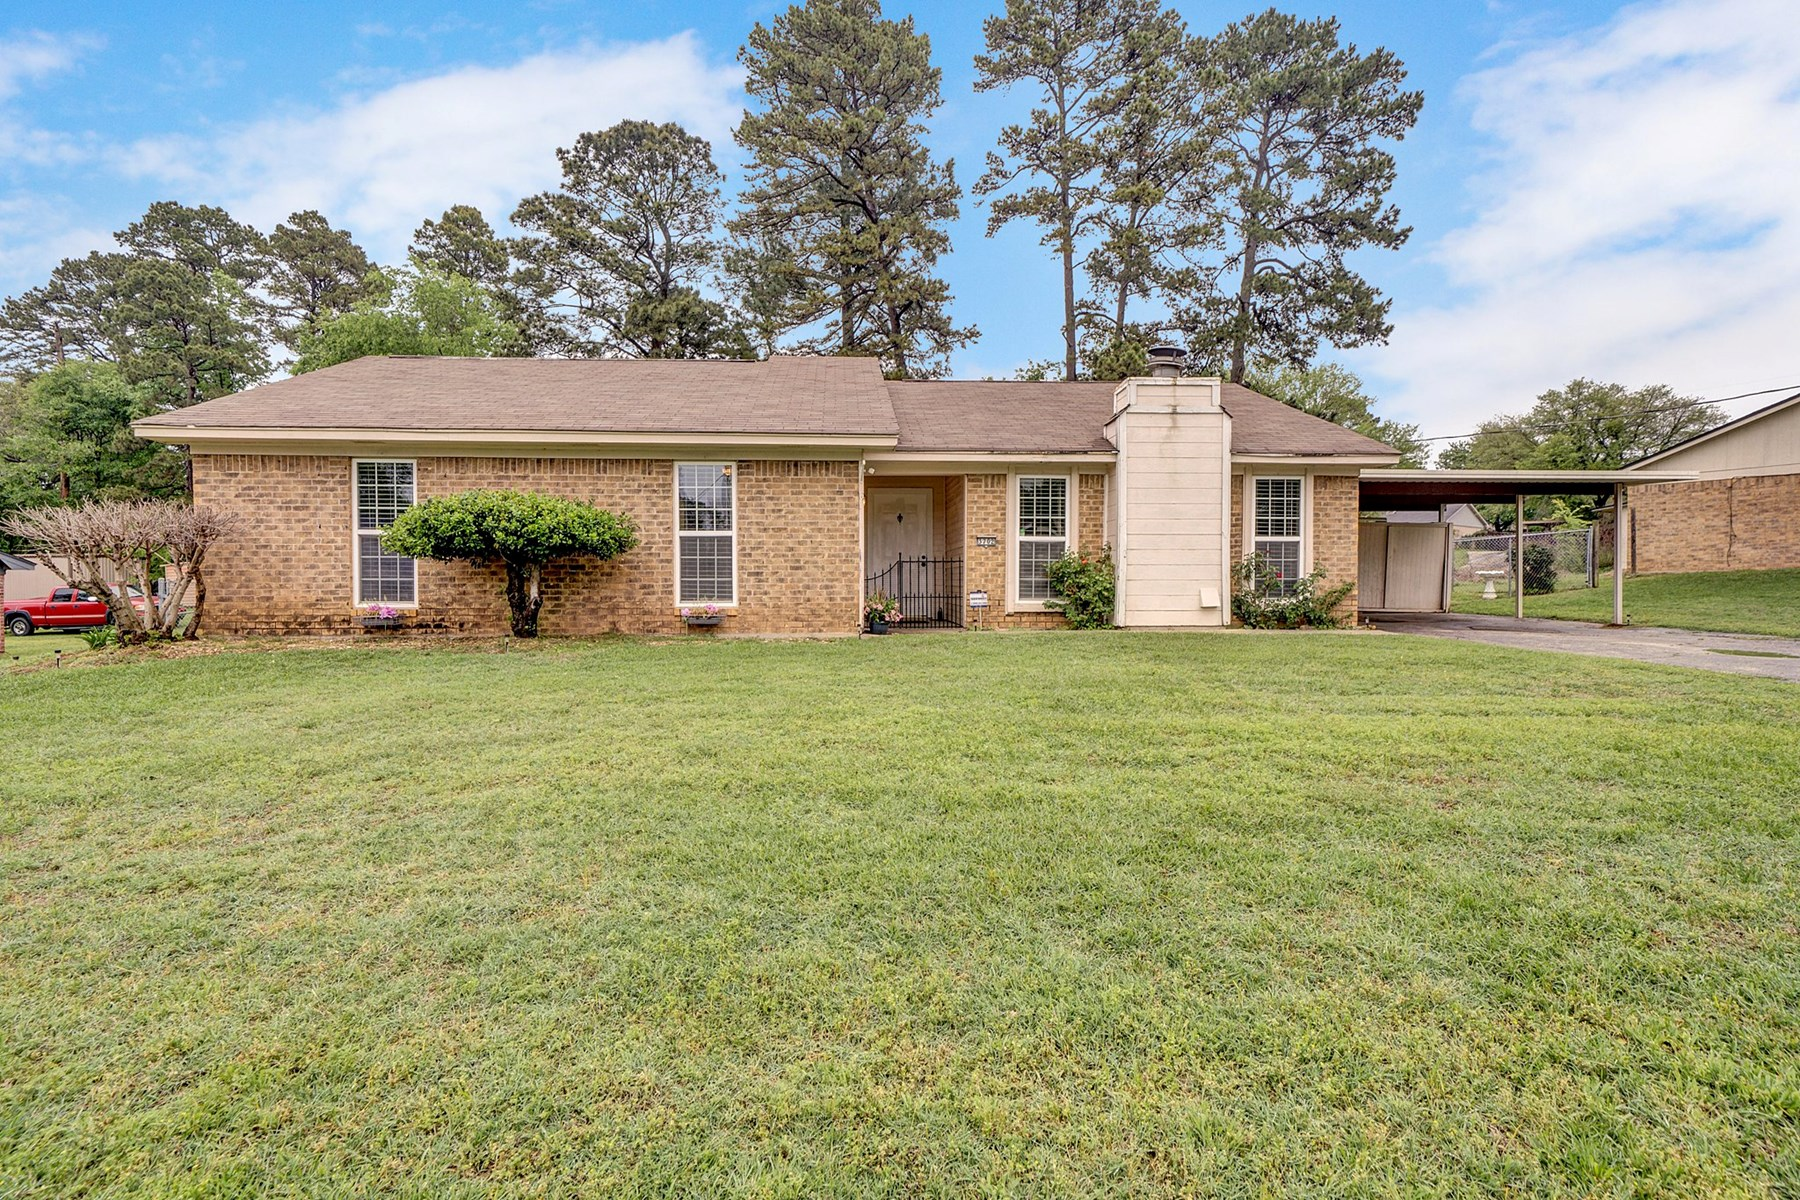 House for sale Longview TX Spring Hill ISD